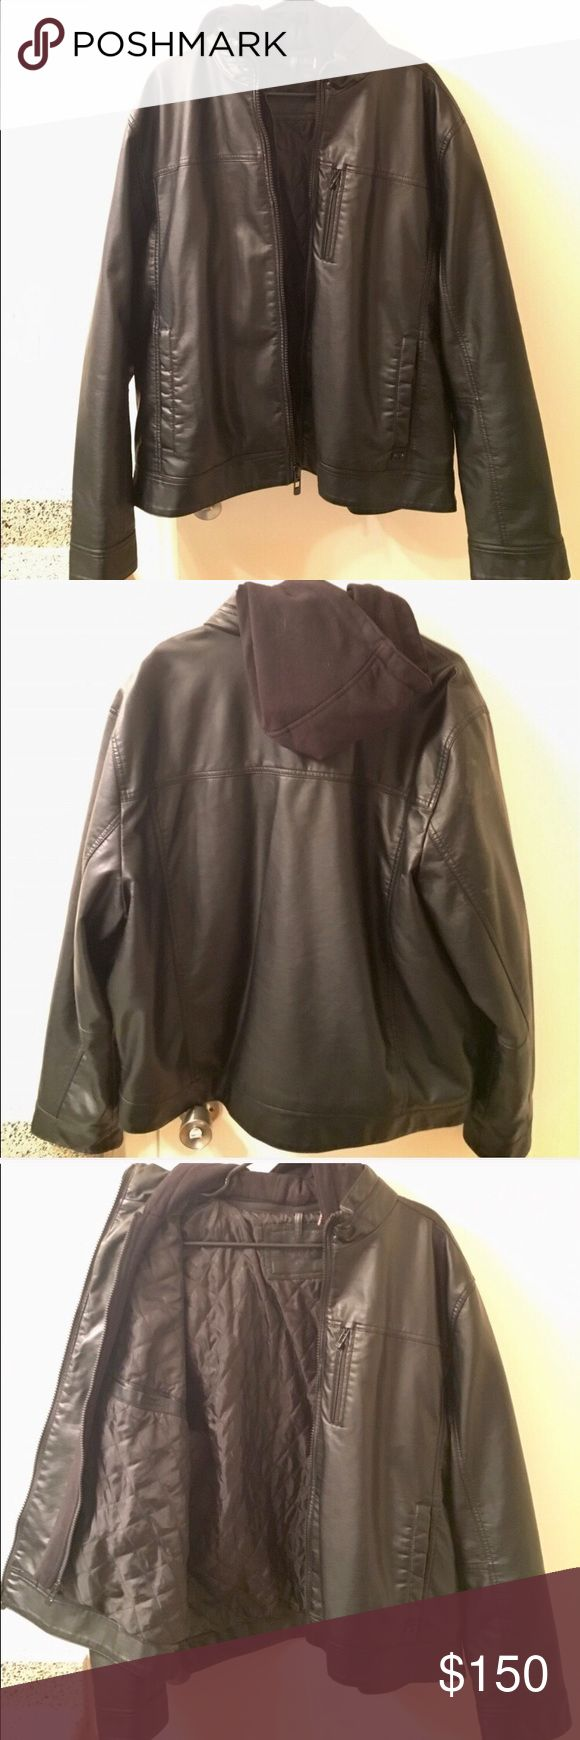 NWOT Black leather jacket Calvin Klein. Black leather jacket, with cotton hood. Size XL men's. NEW without tags. Calvin Klein Jackets & Coats